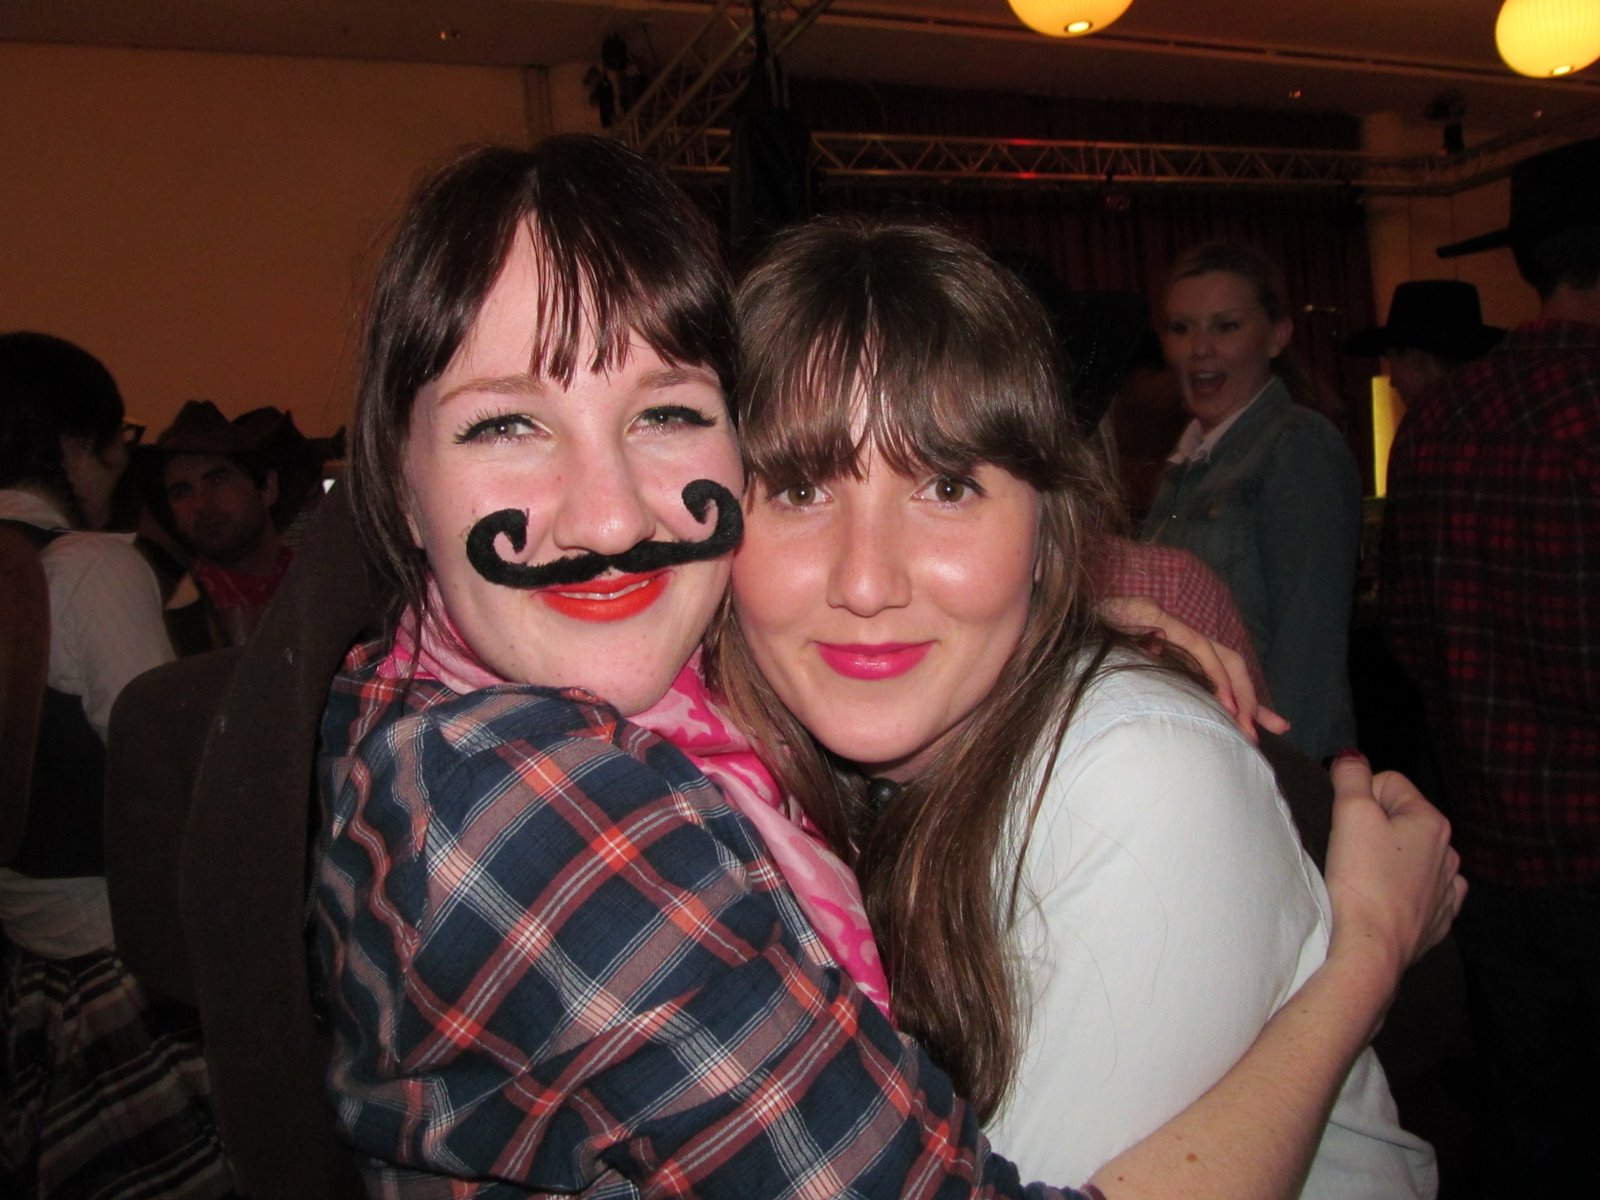 MAC Lady Danger and Girl About Town